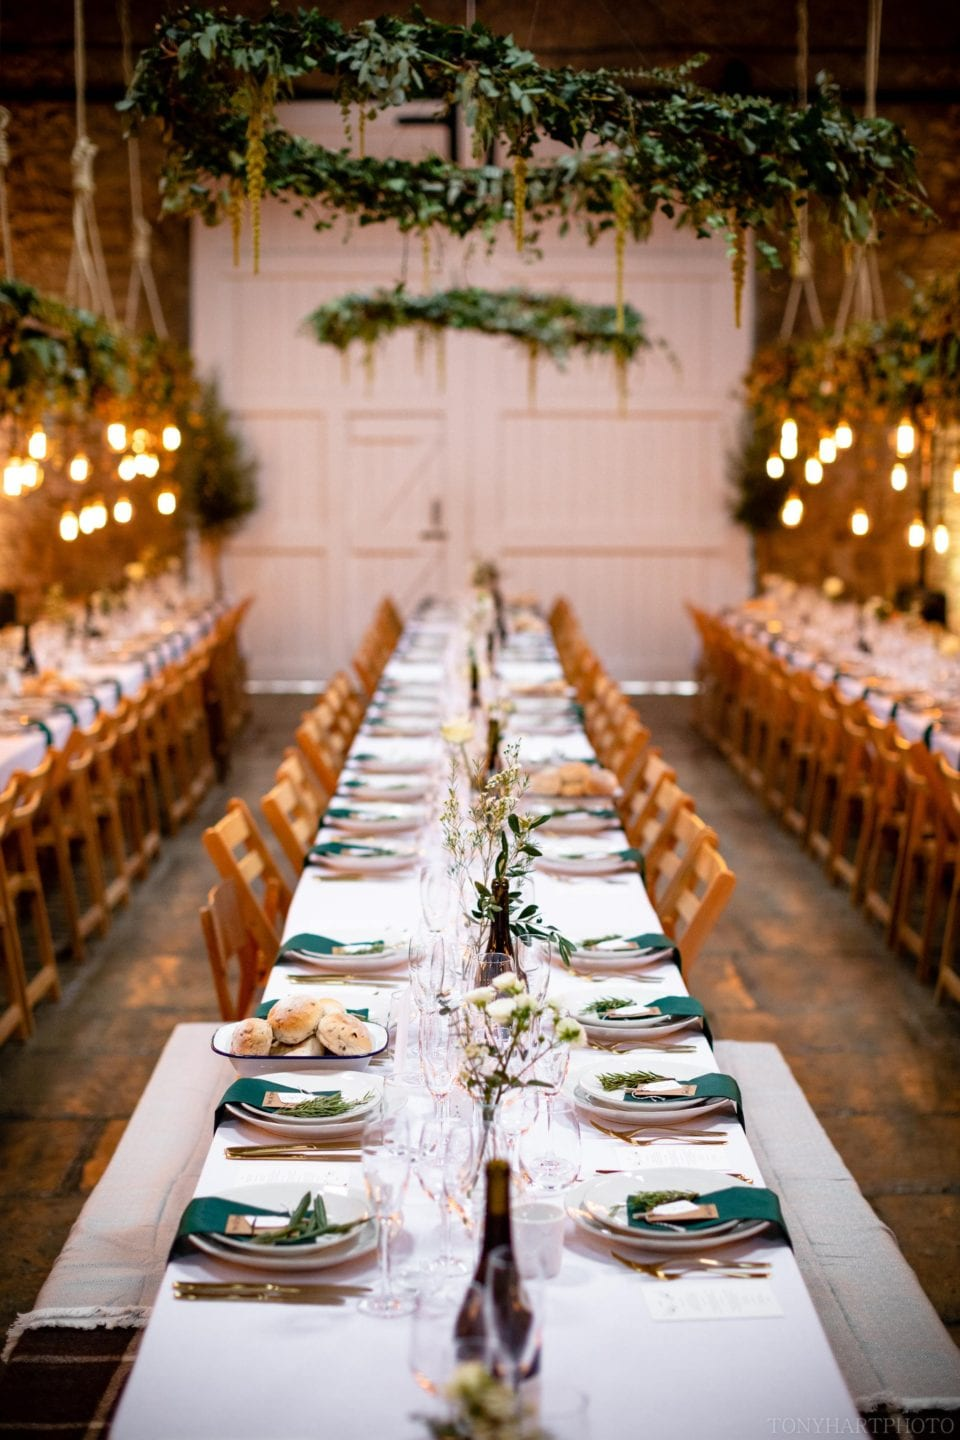 Banqueting tables in the barn